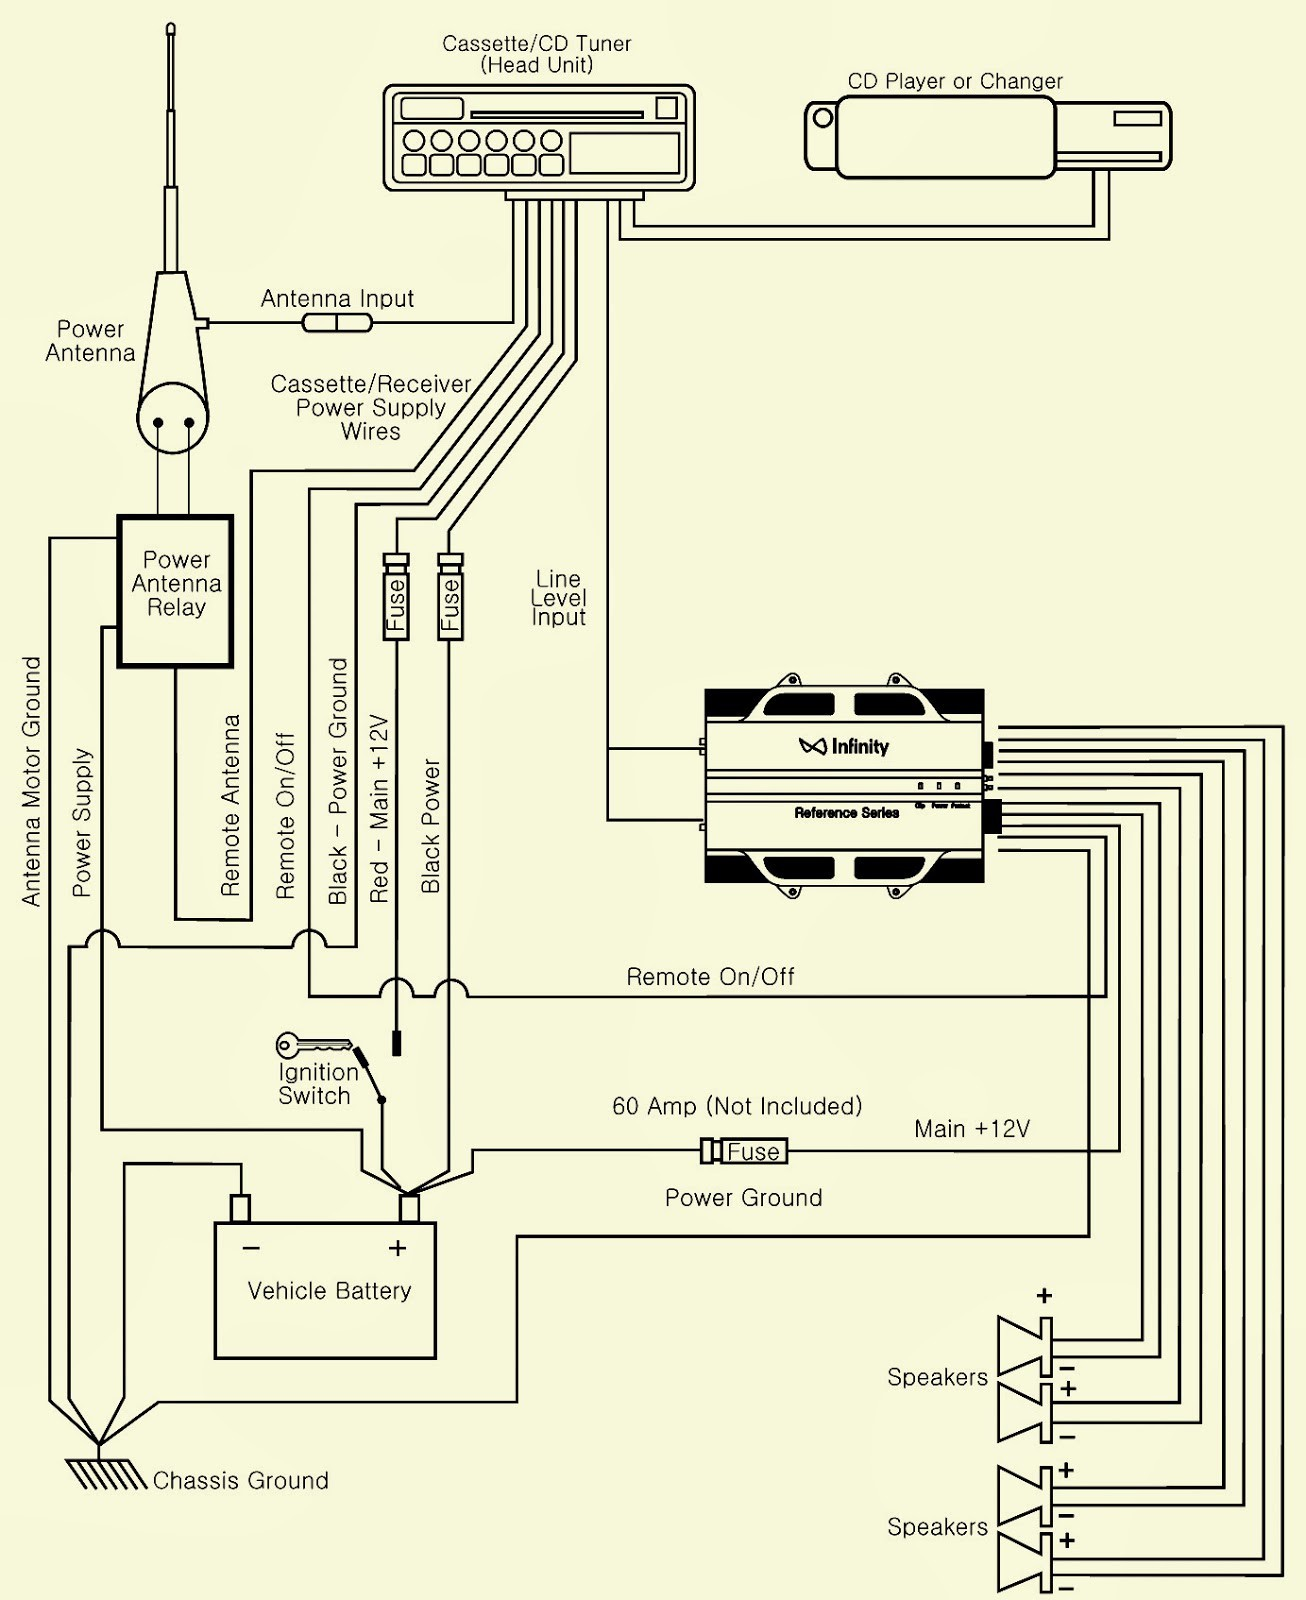 5 Channel Amp Wiring Diagram 5 Channel Amp Wiring Diagram Chart Gallery and How to Wire A Tryit Of 5 Channel Amp Wiring Diagram